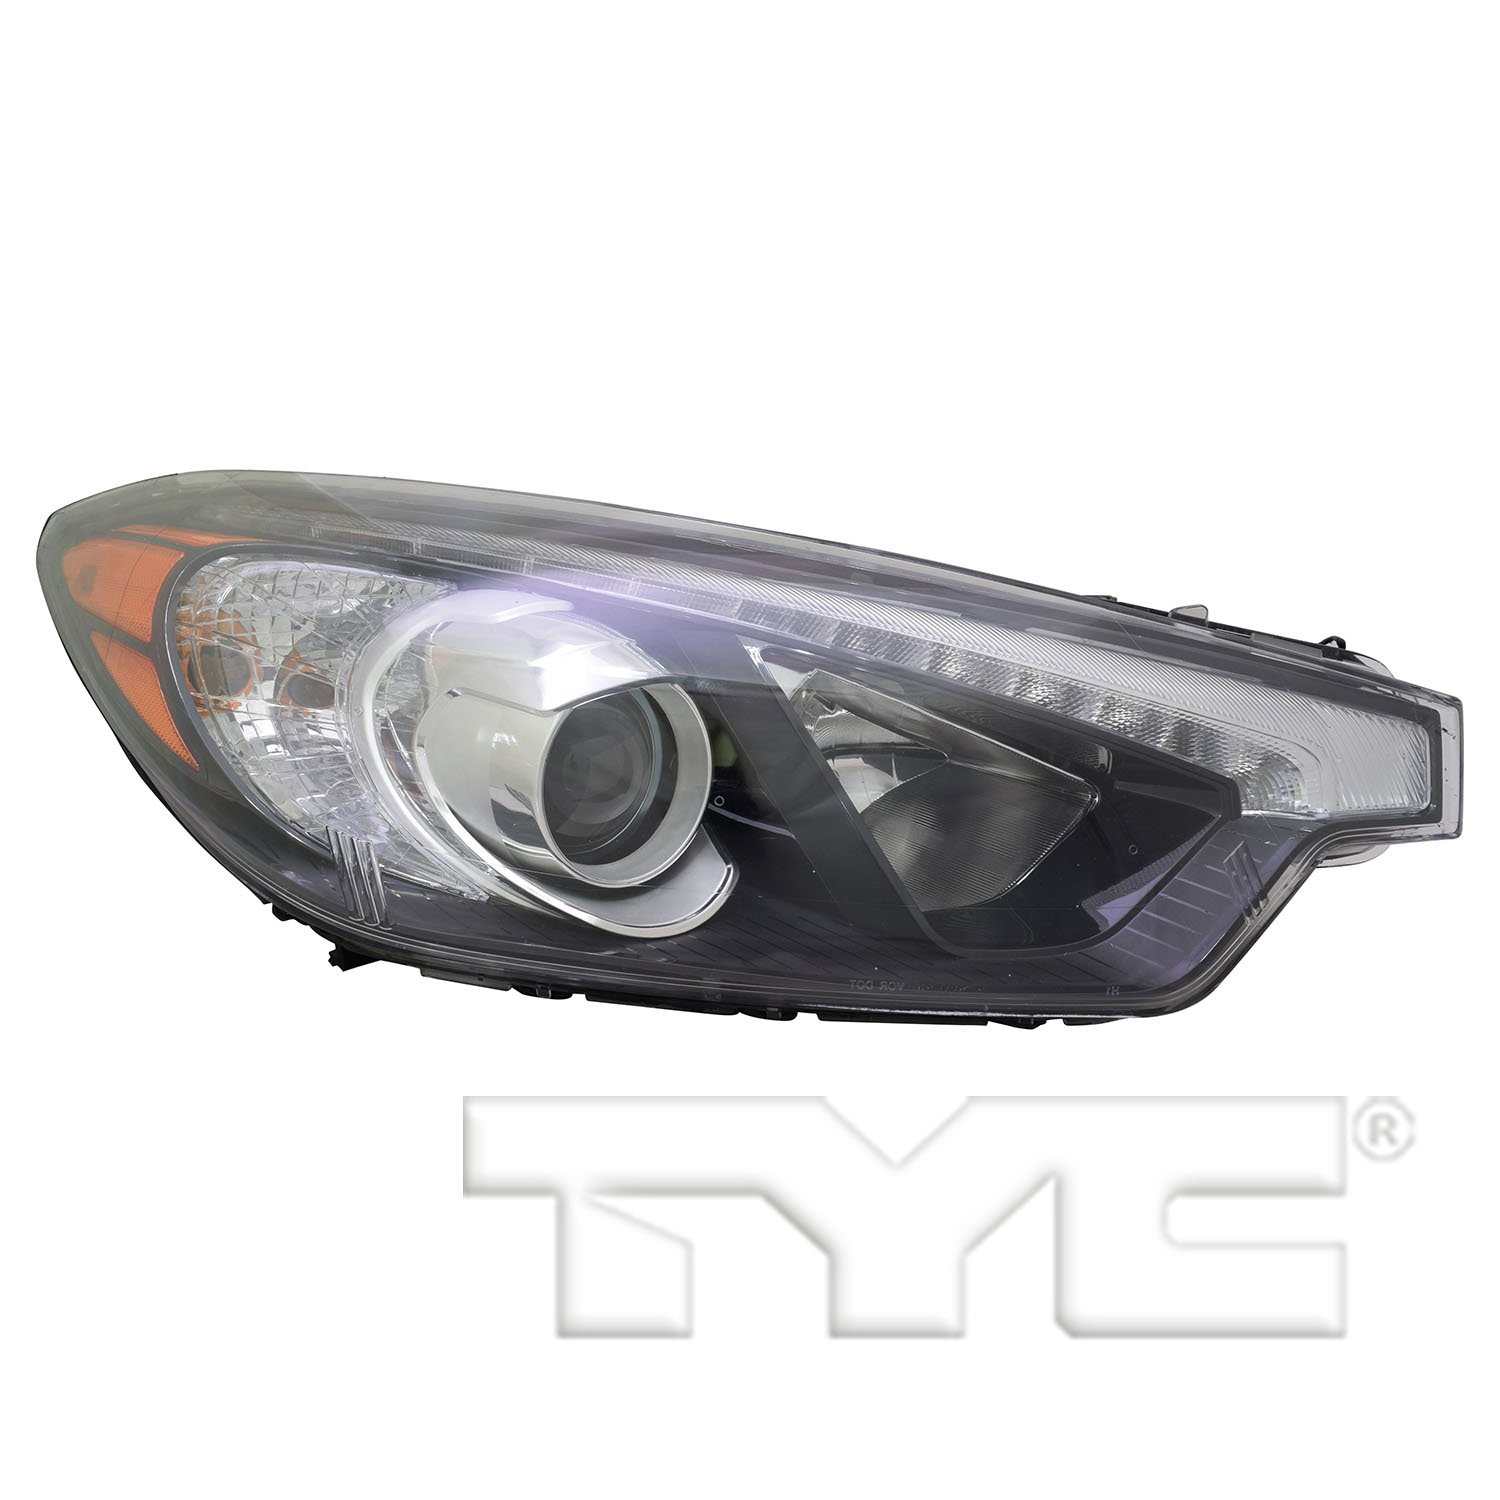 TYC 20-9459-80-1 Replacement Right Head Lamp for KIA Forte